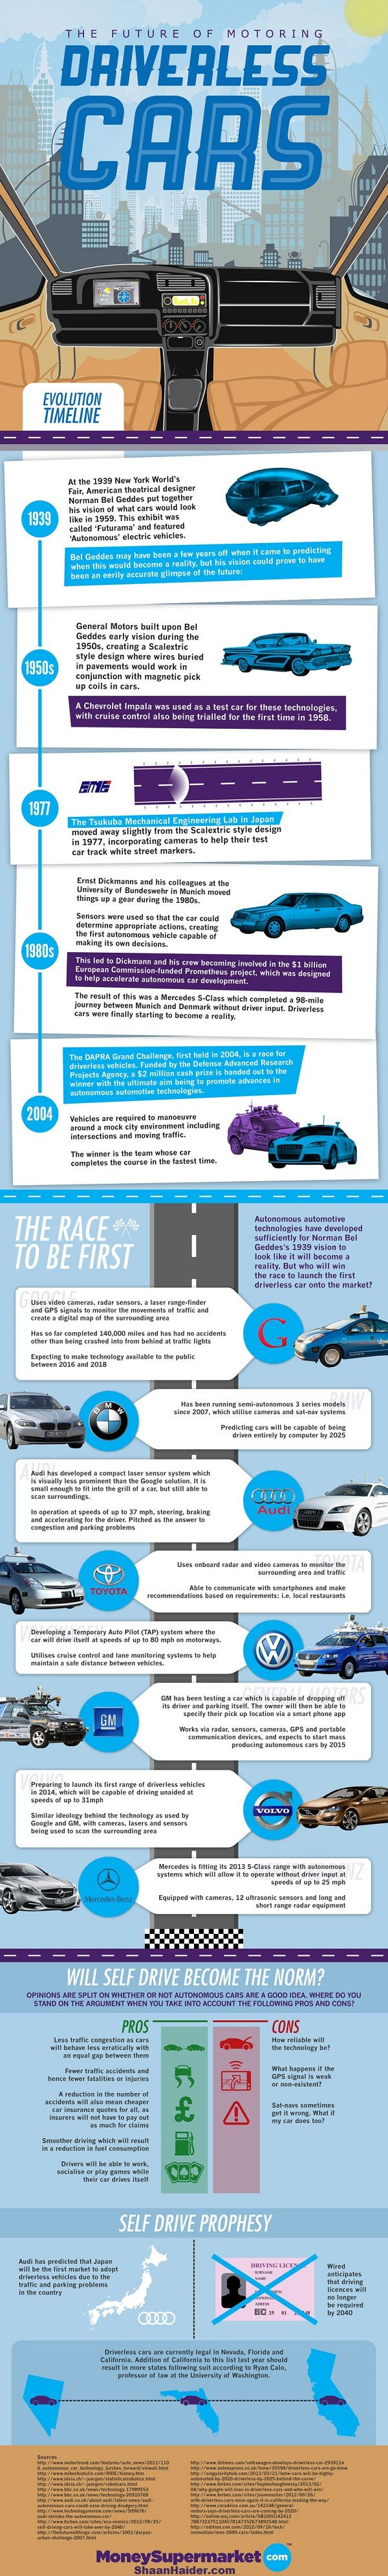 The History and Future of Driverless Cars (Infographic)